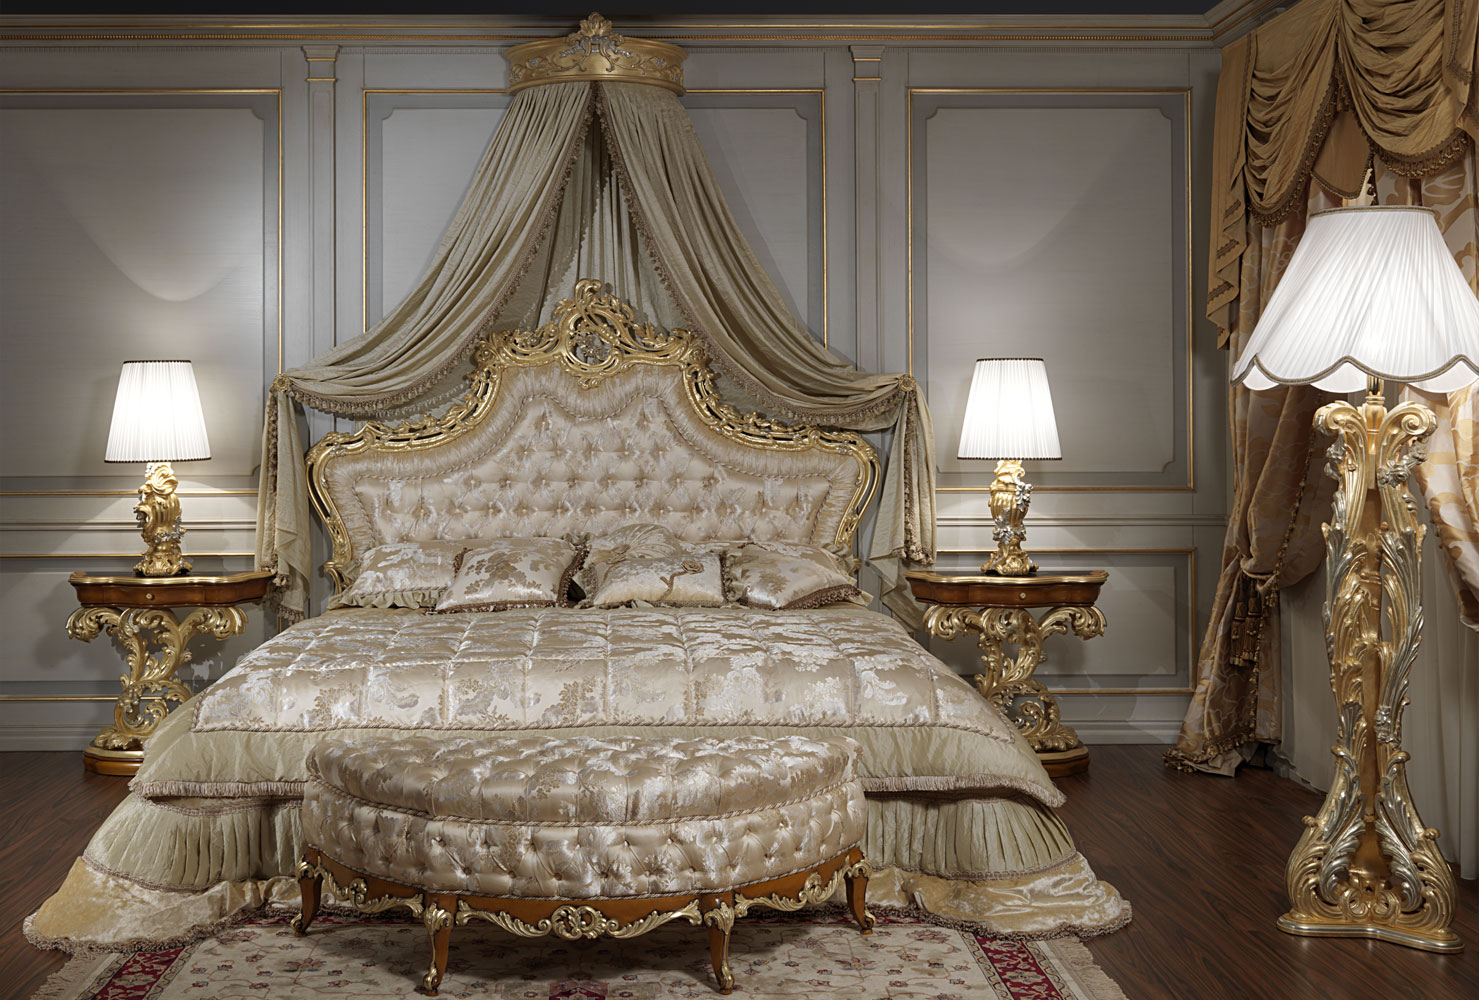 luxury bedroom designs marie antoinette style theme